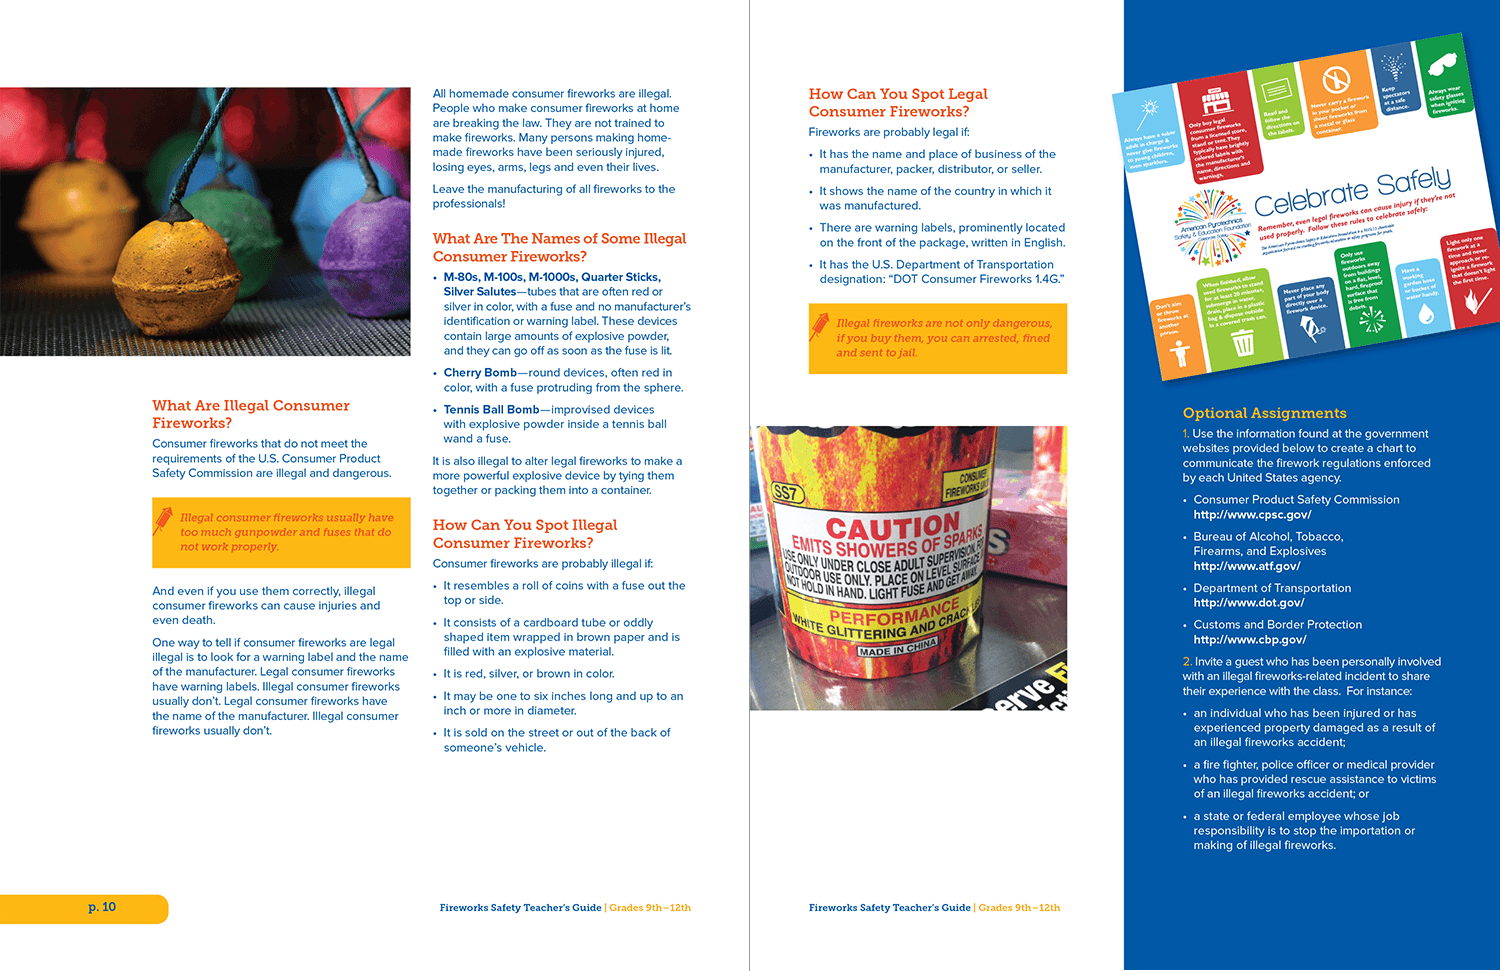 apa_fireworks-guide-6.png